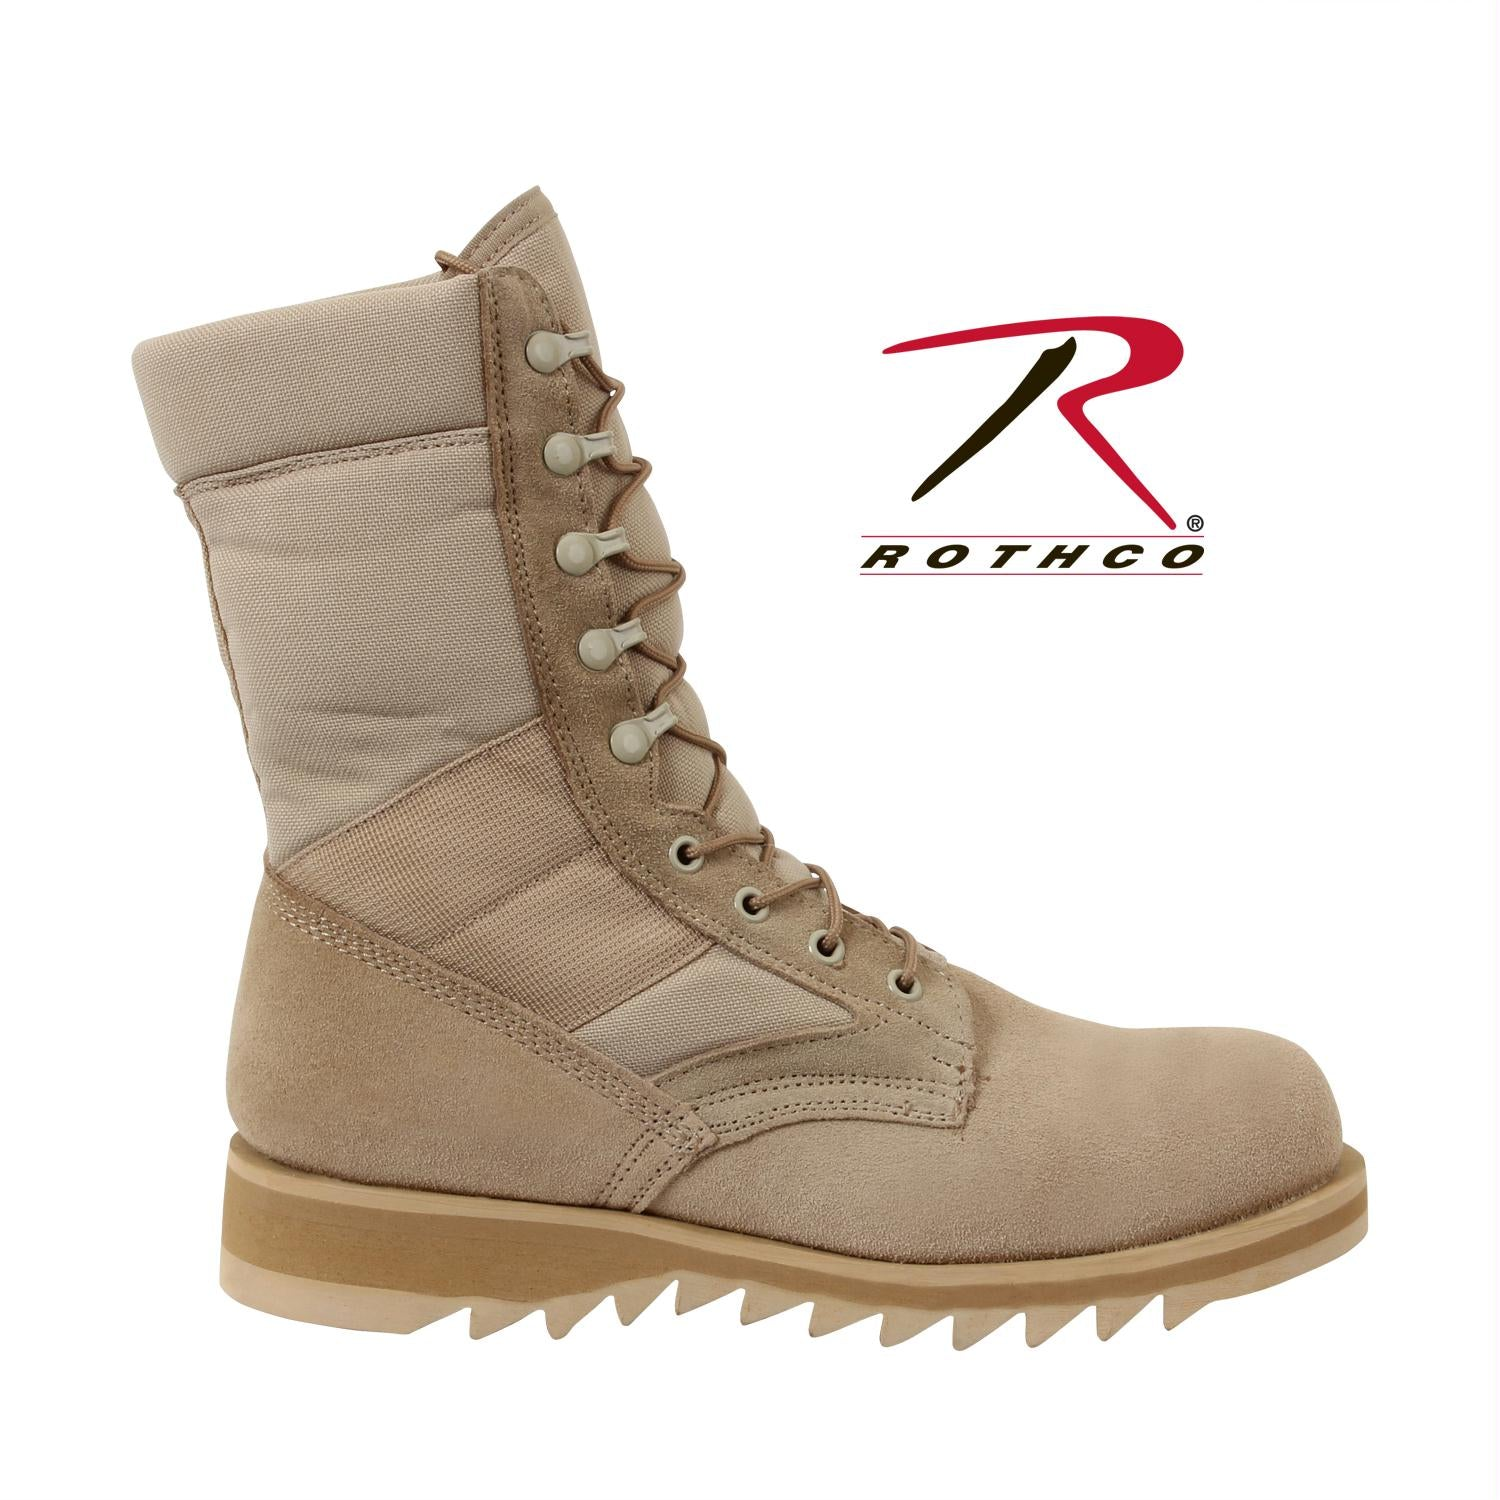 Rothco G.I. Type Ripple Sole Desert Tan Jungle Boots - 13 / Wide